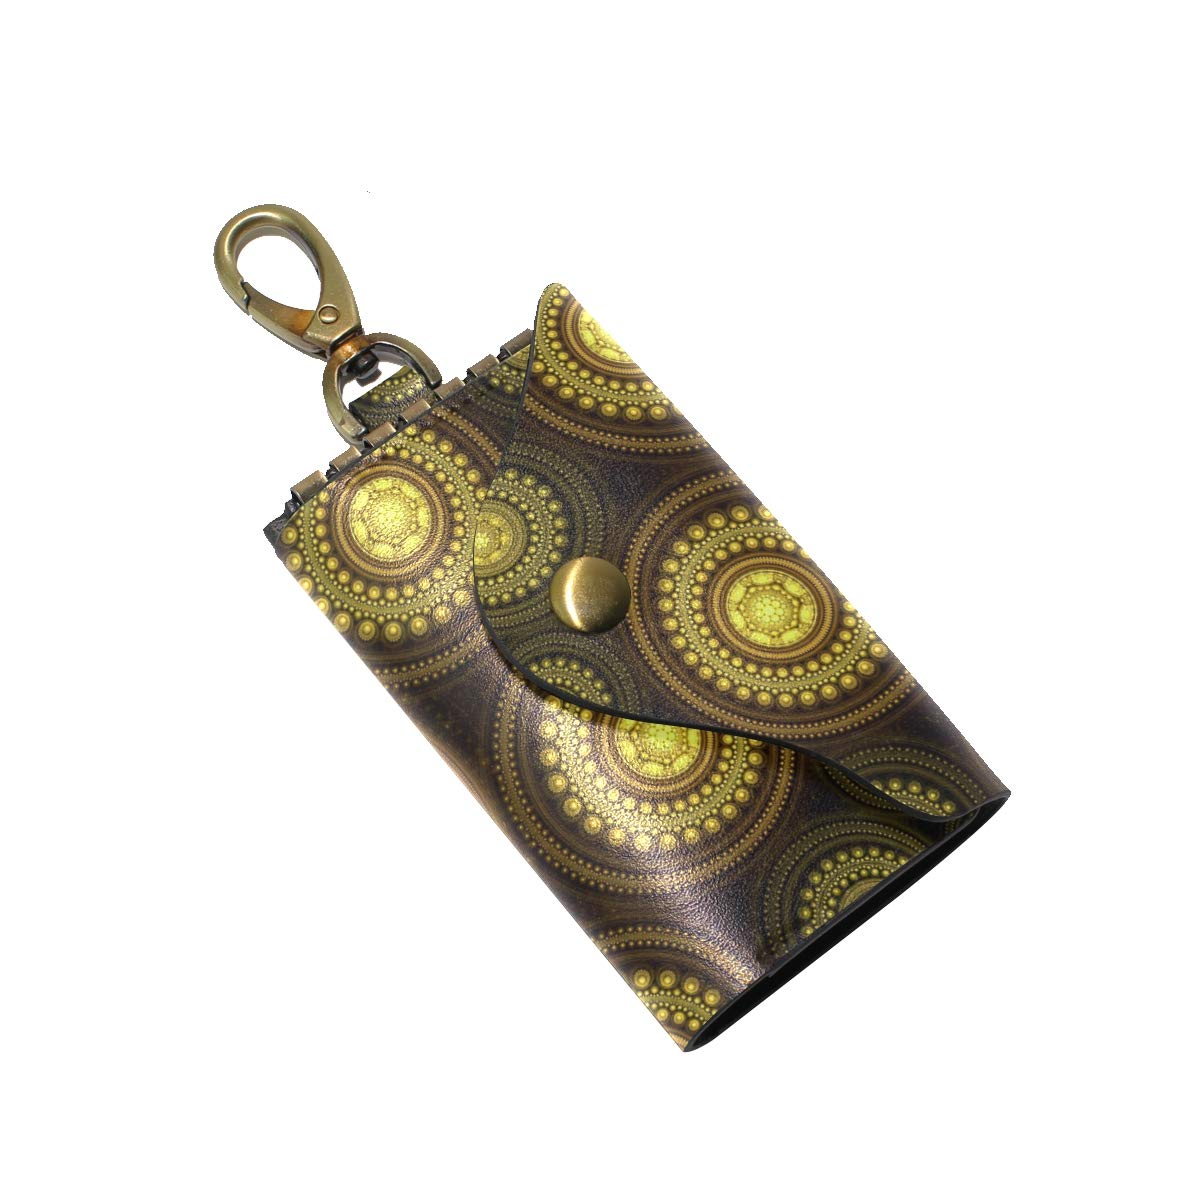 KEAKIA Fractal Yellow Leather Key Case Wallets Tri-fold Key Holder Keychains with 6 Hooks 2 Slot Snap Closure for Men Women